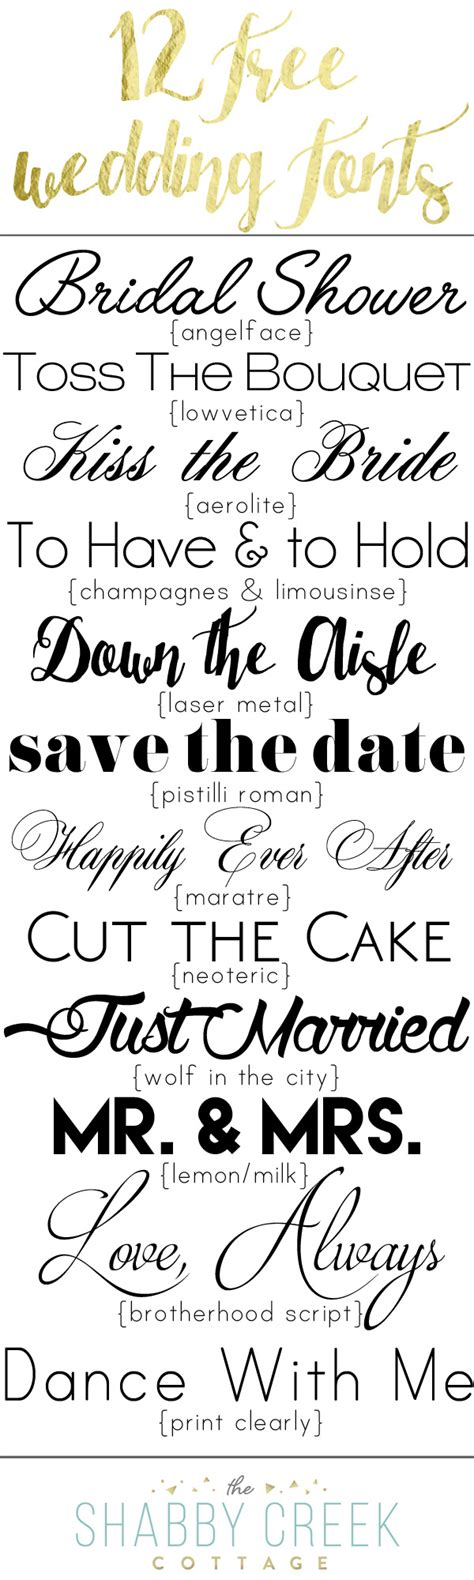 free printable wedding fonts freebies archives page 5 of 13 the shabby creek cottage